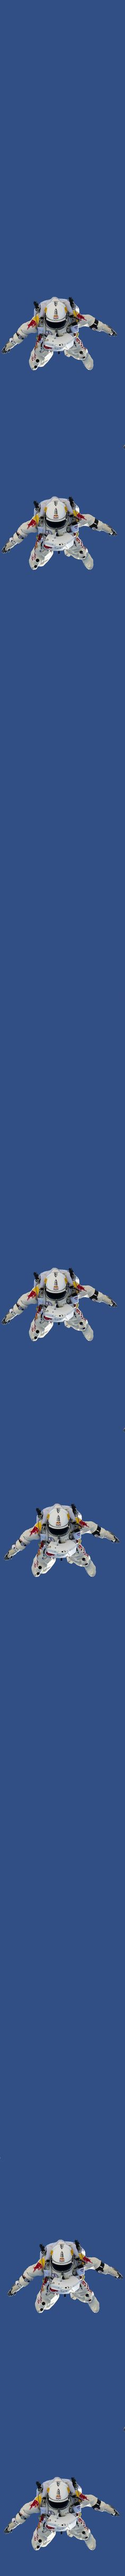 @Red Bull #stratos #livejump #pinterest #hack